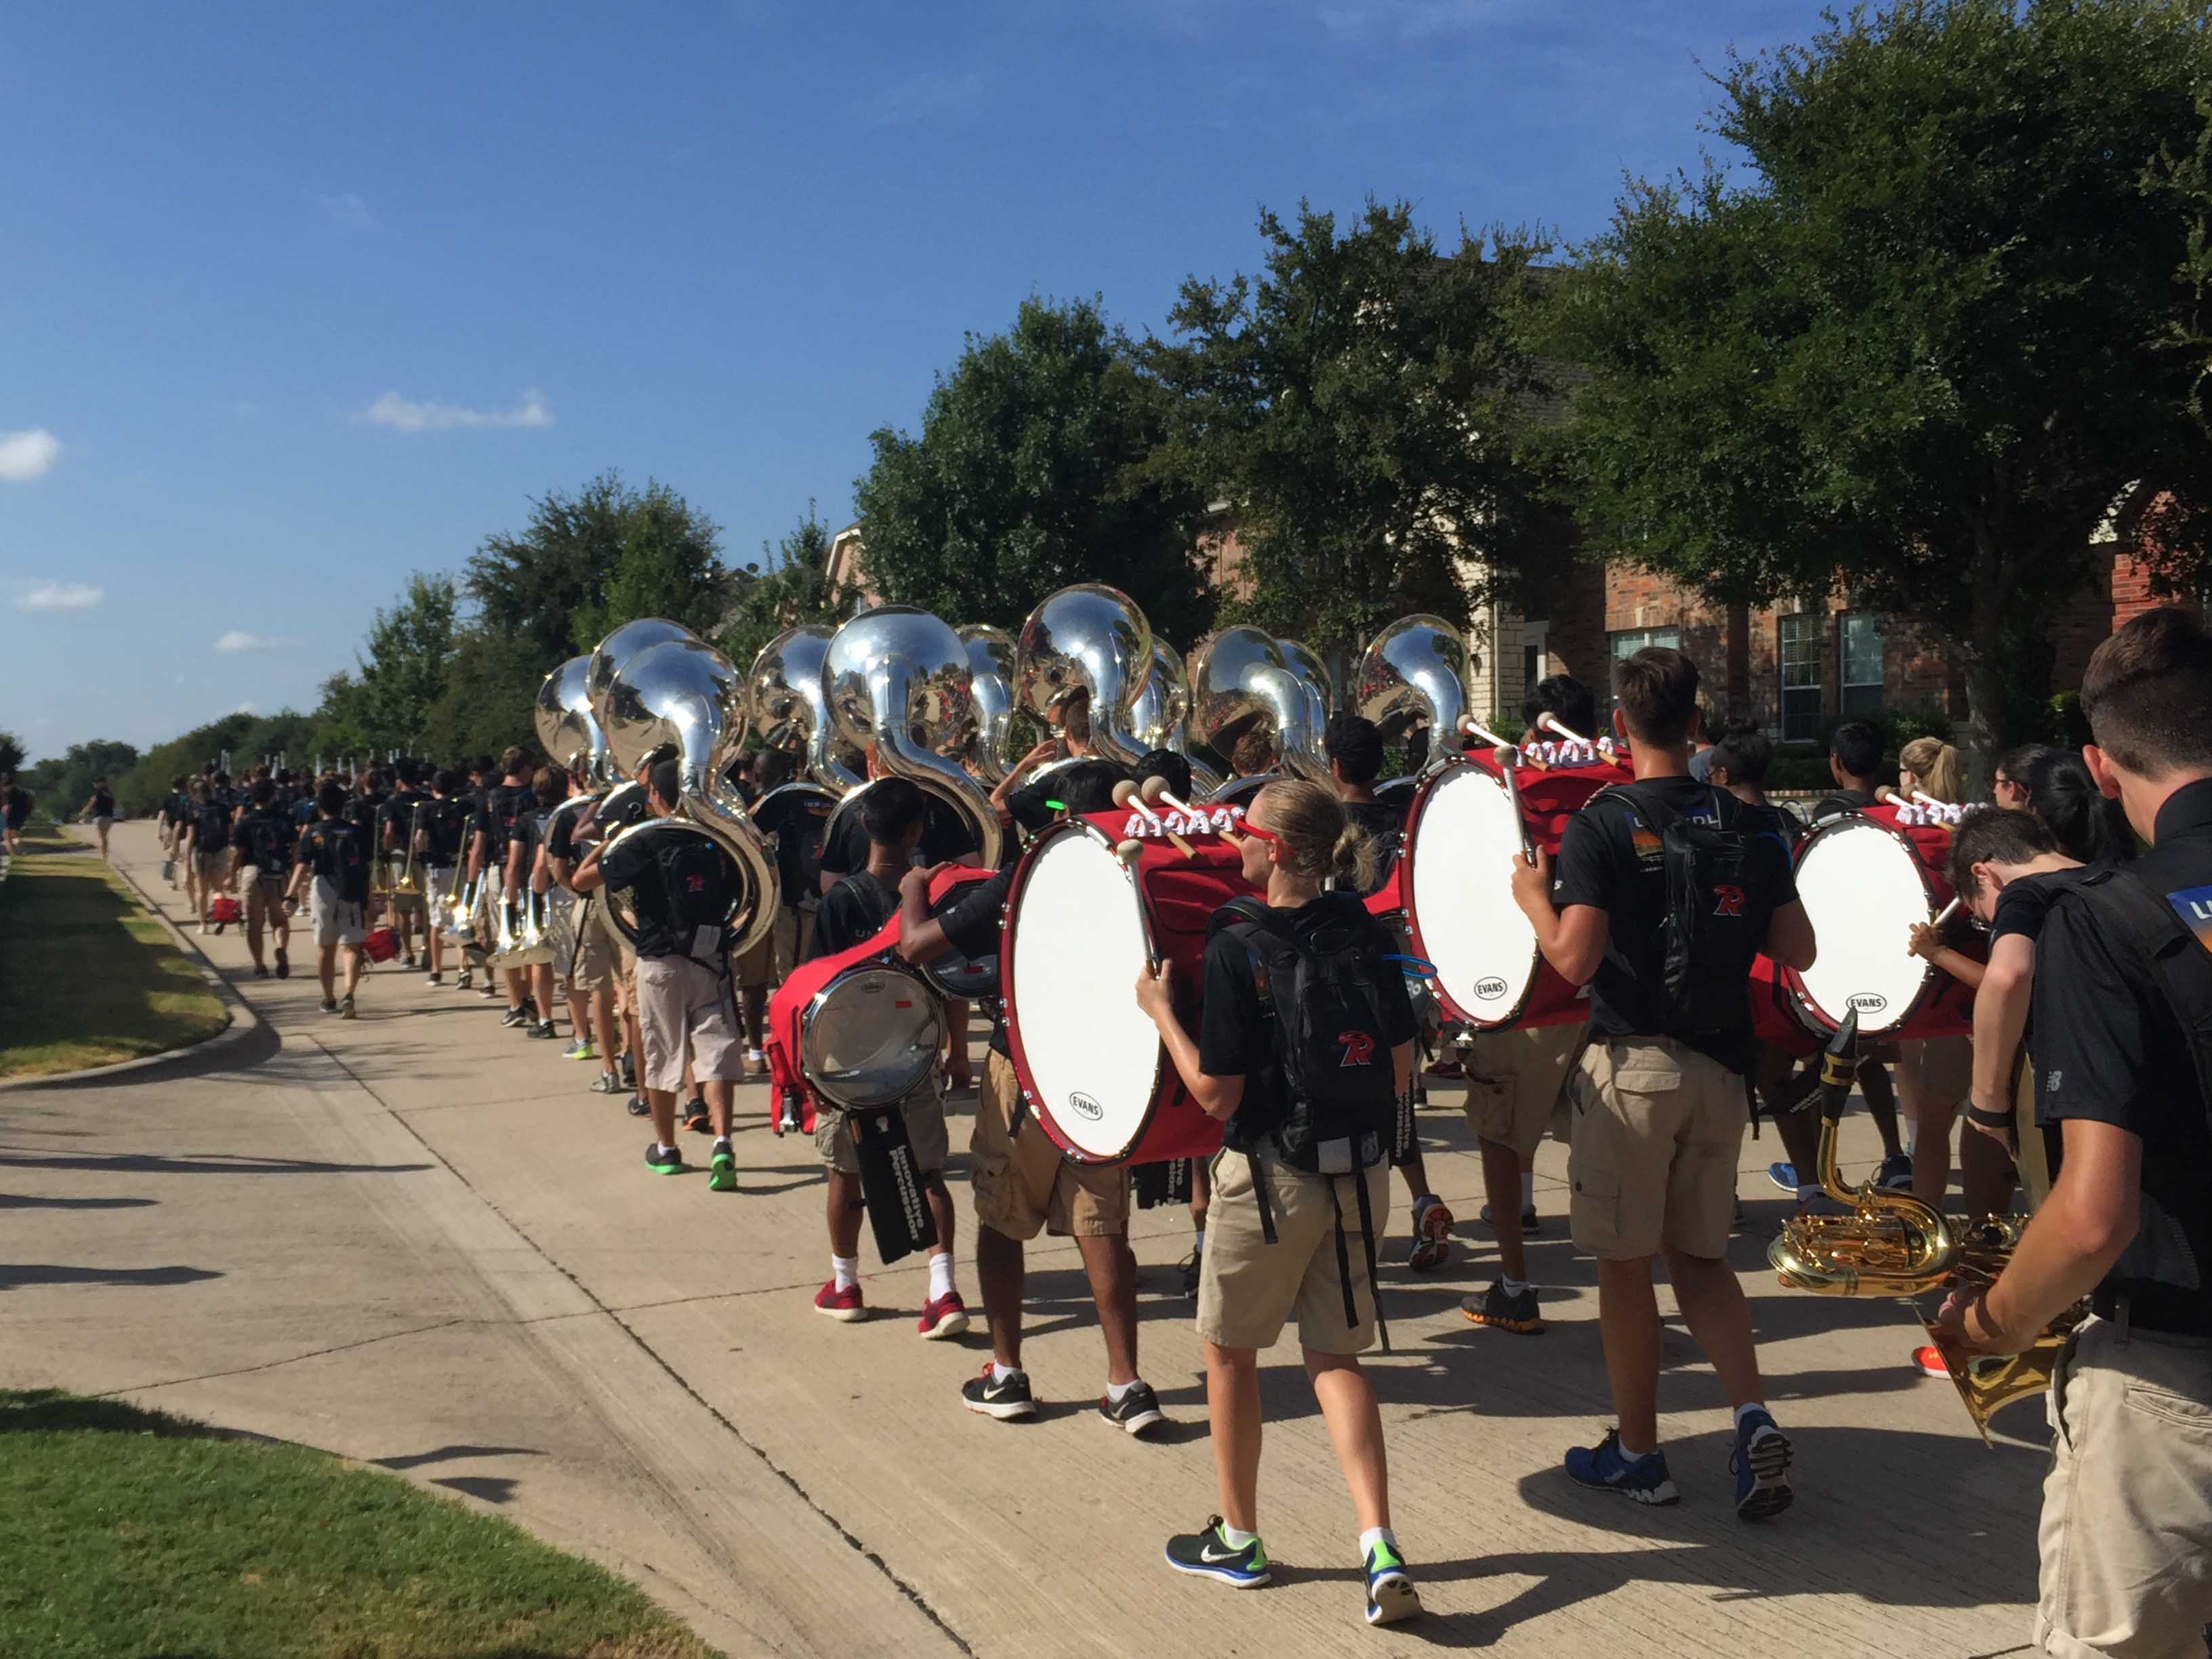 The band marched through the neighborhoods and played show music and mini concerts hoping to raise money for the year.